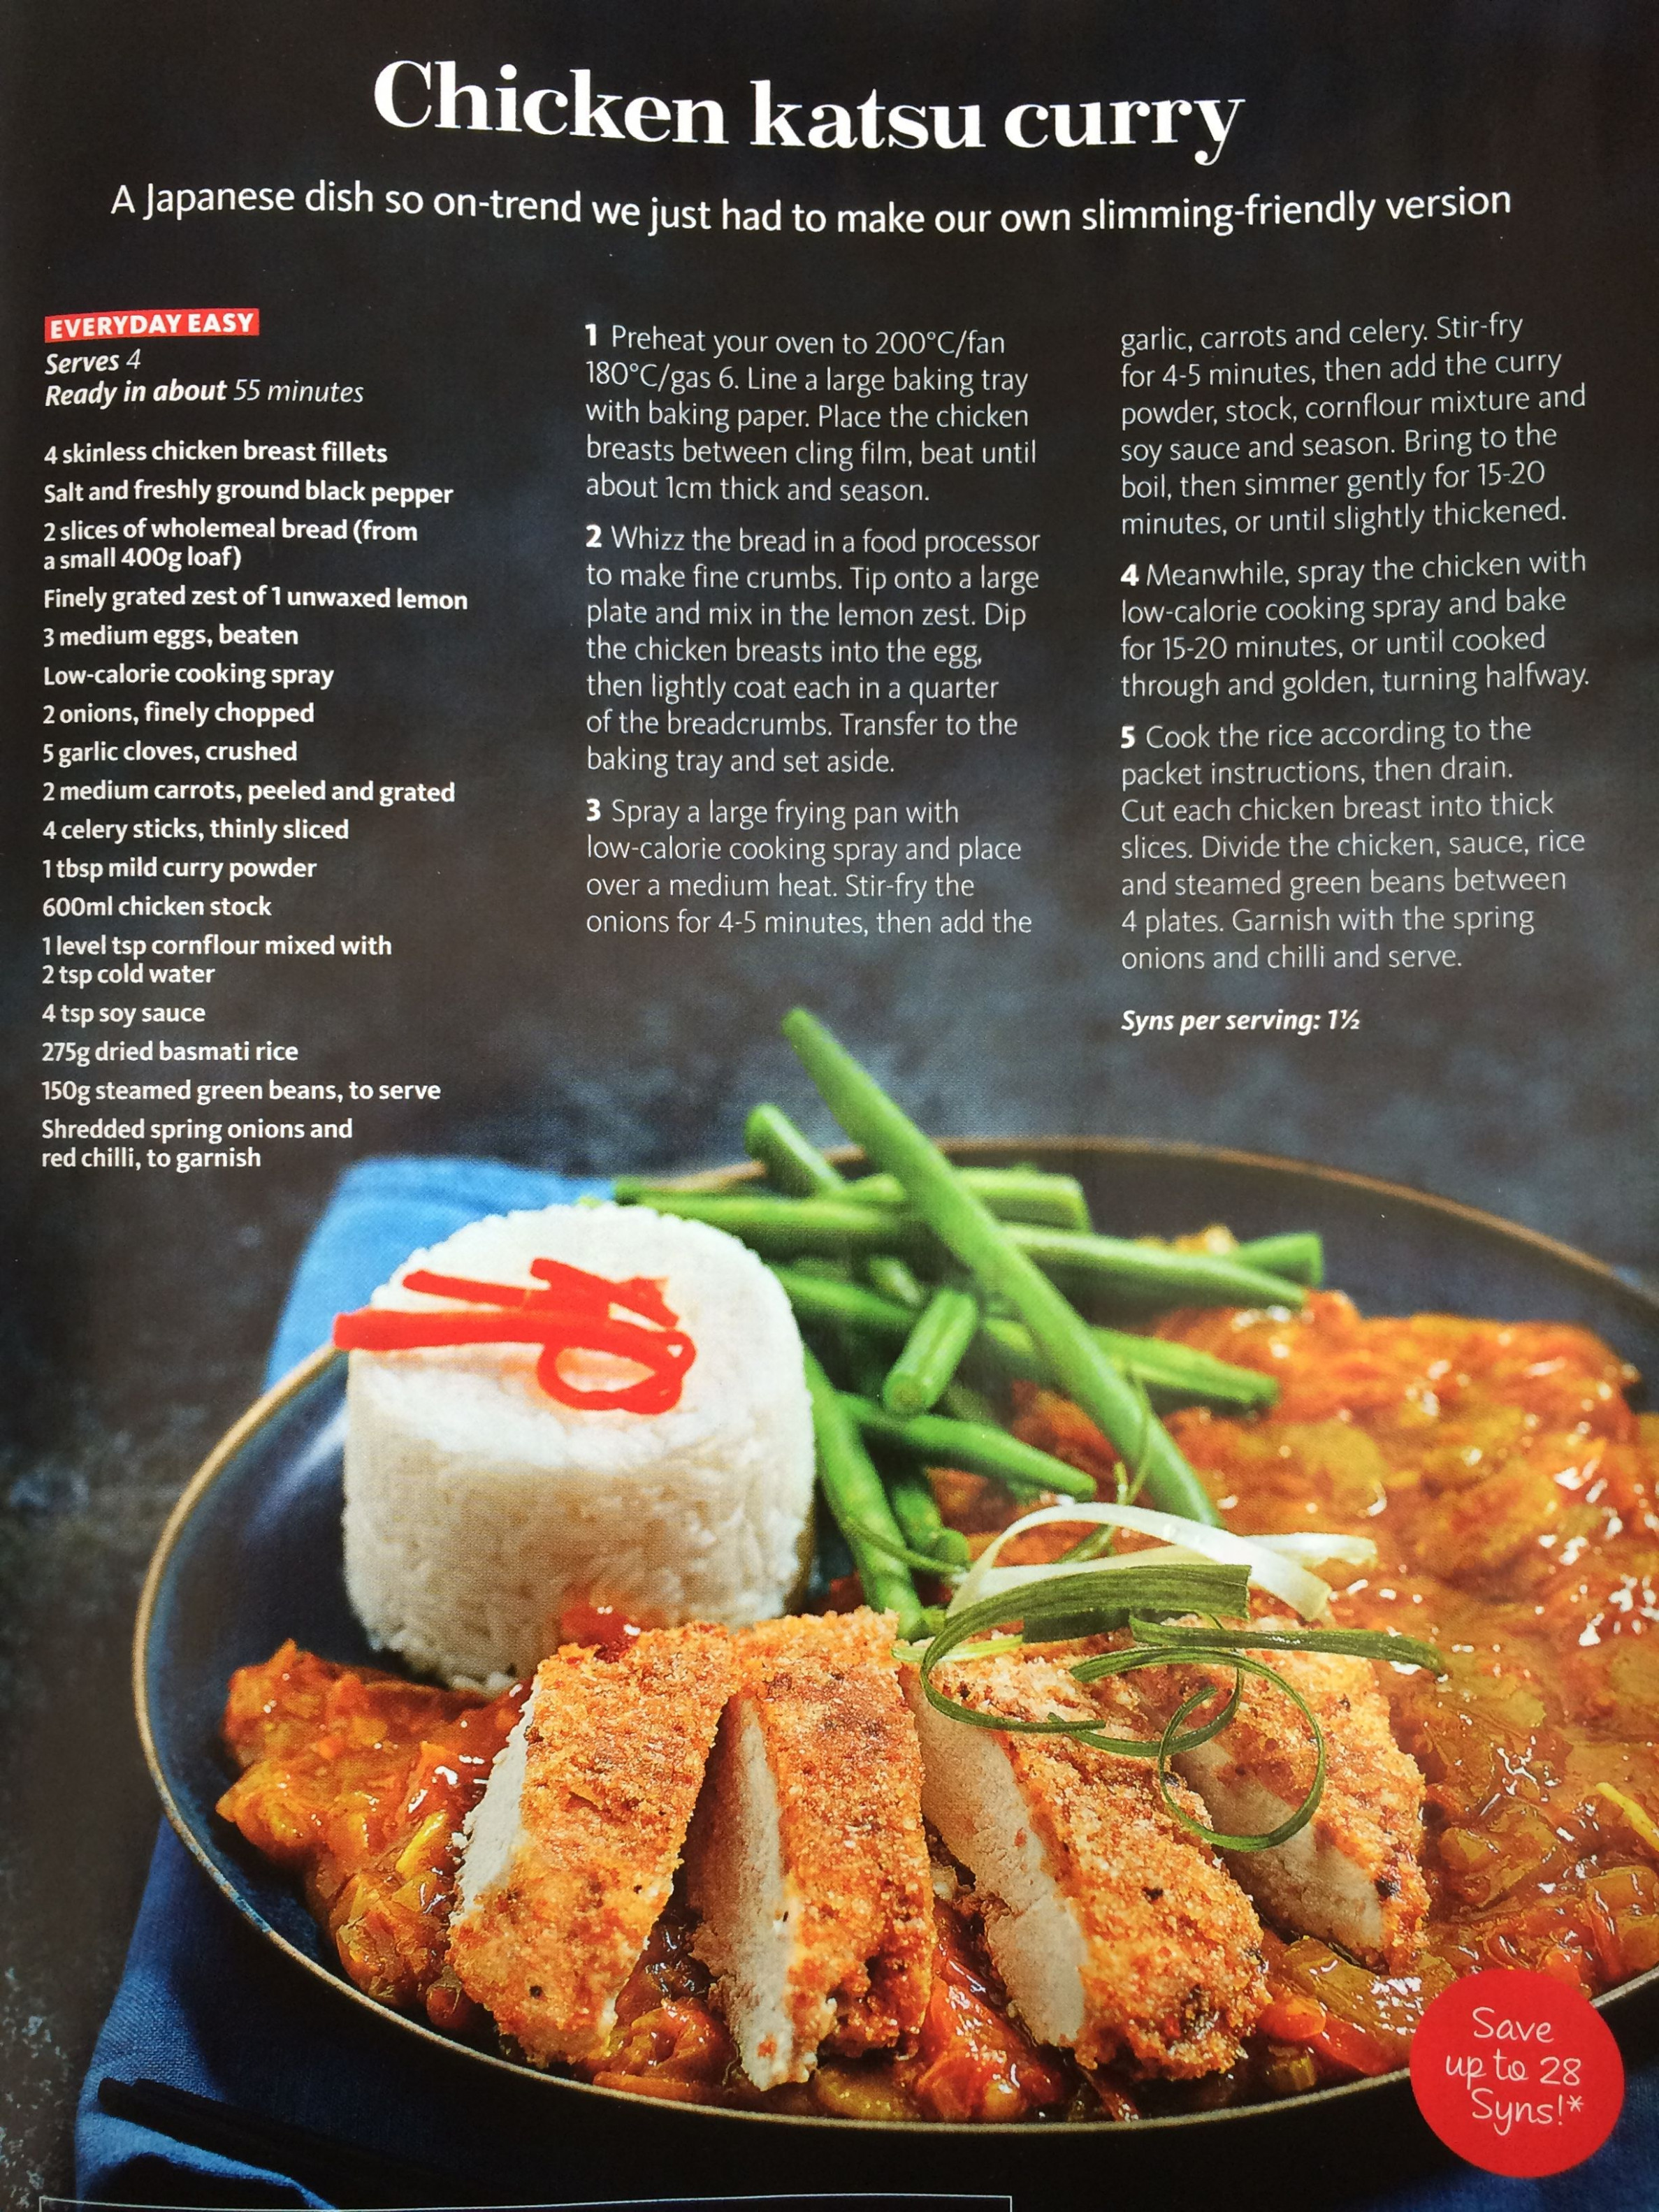 Slimming world Katsu curry - 1.5syns per serving, serves 4 ...